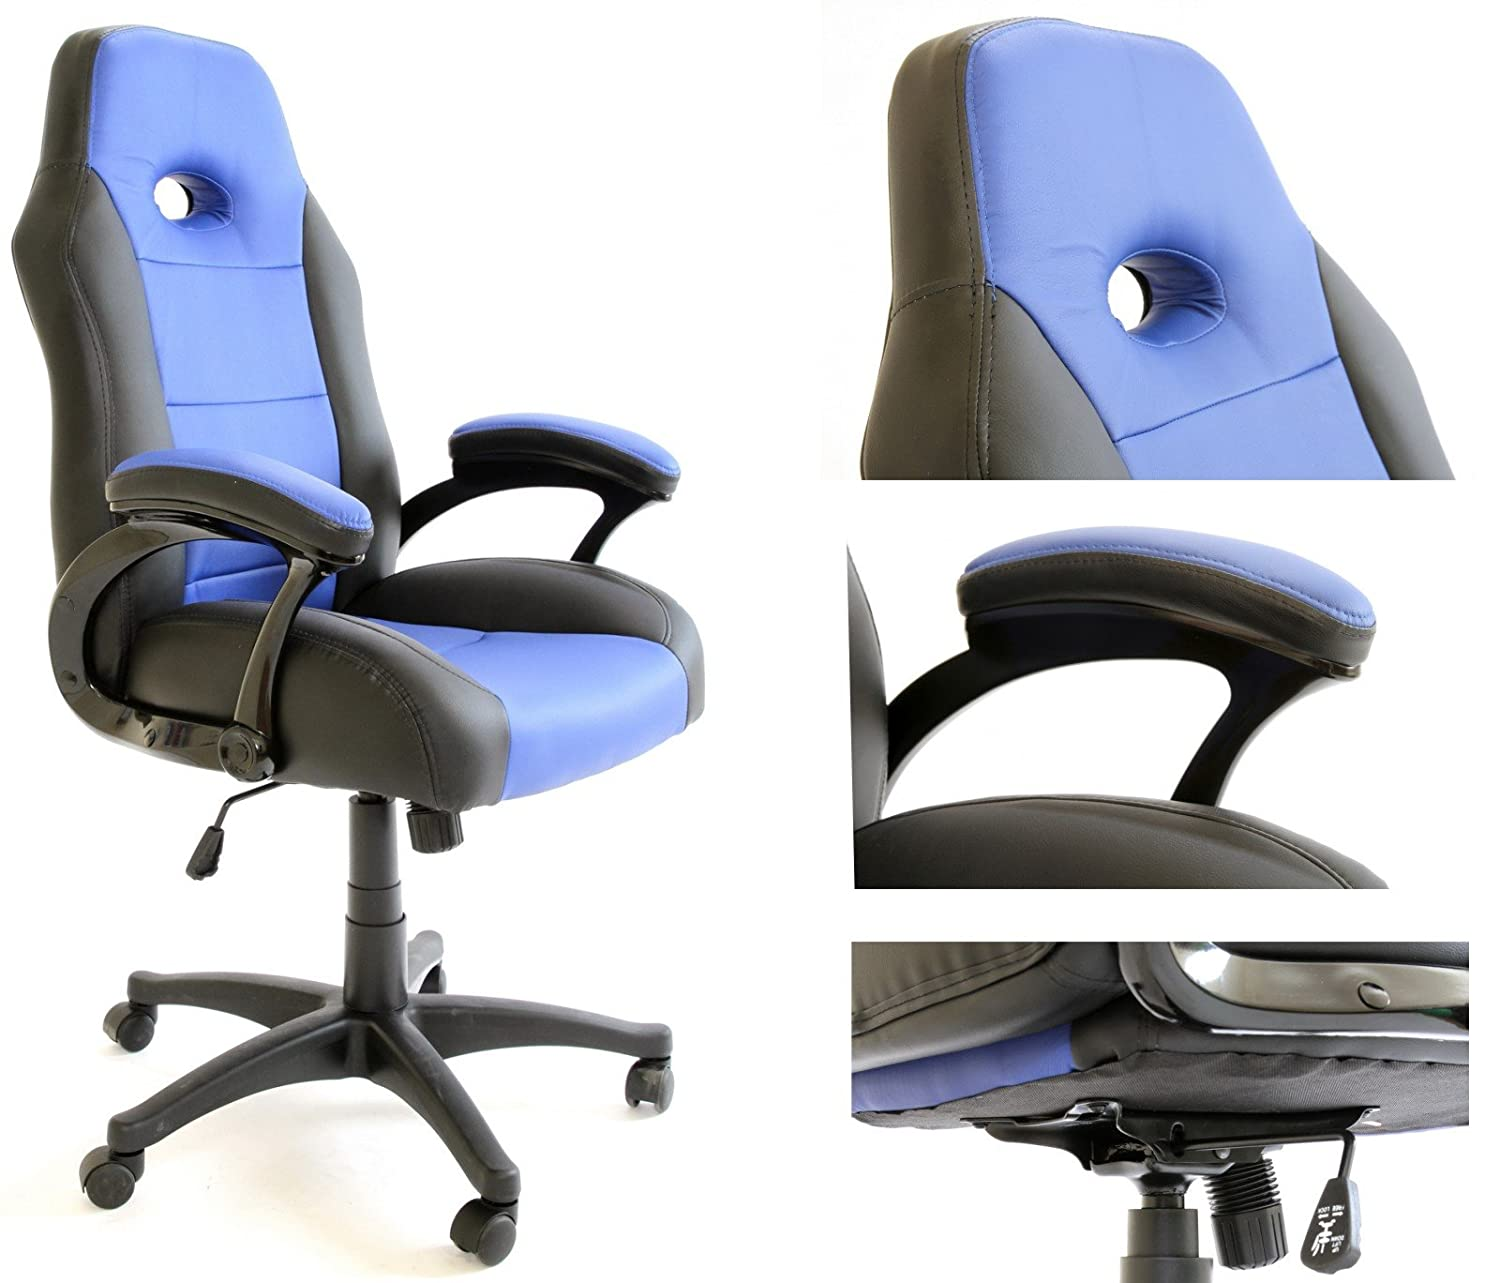 Charles Jacobs Gaming CHAIR in Black & Blue PREMIUM QUALITY Luxury